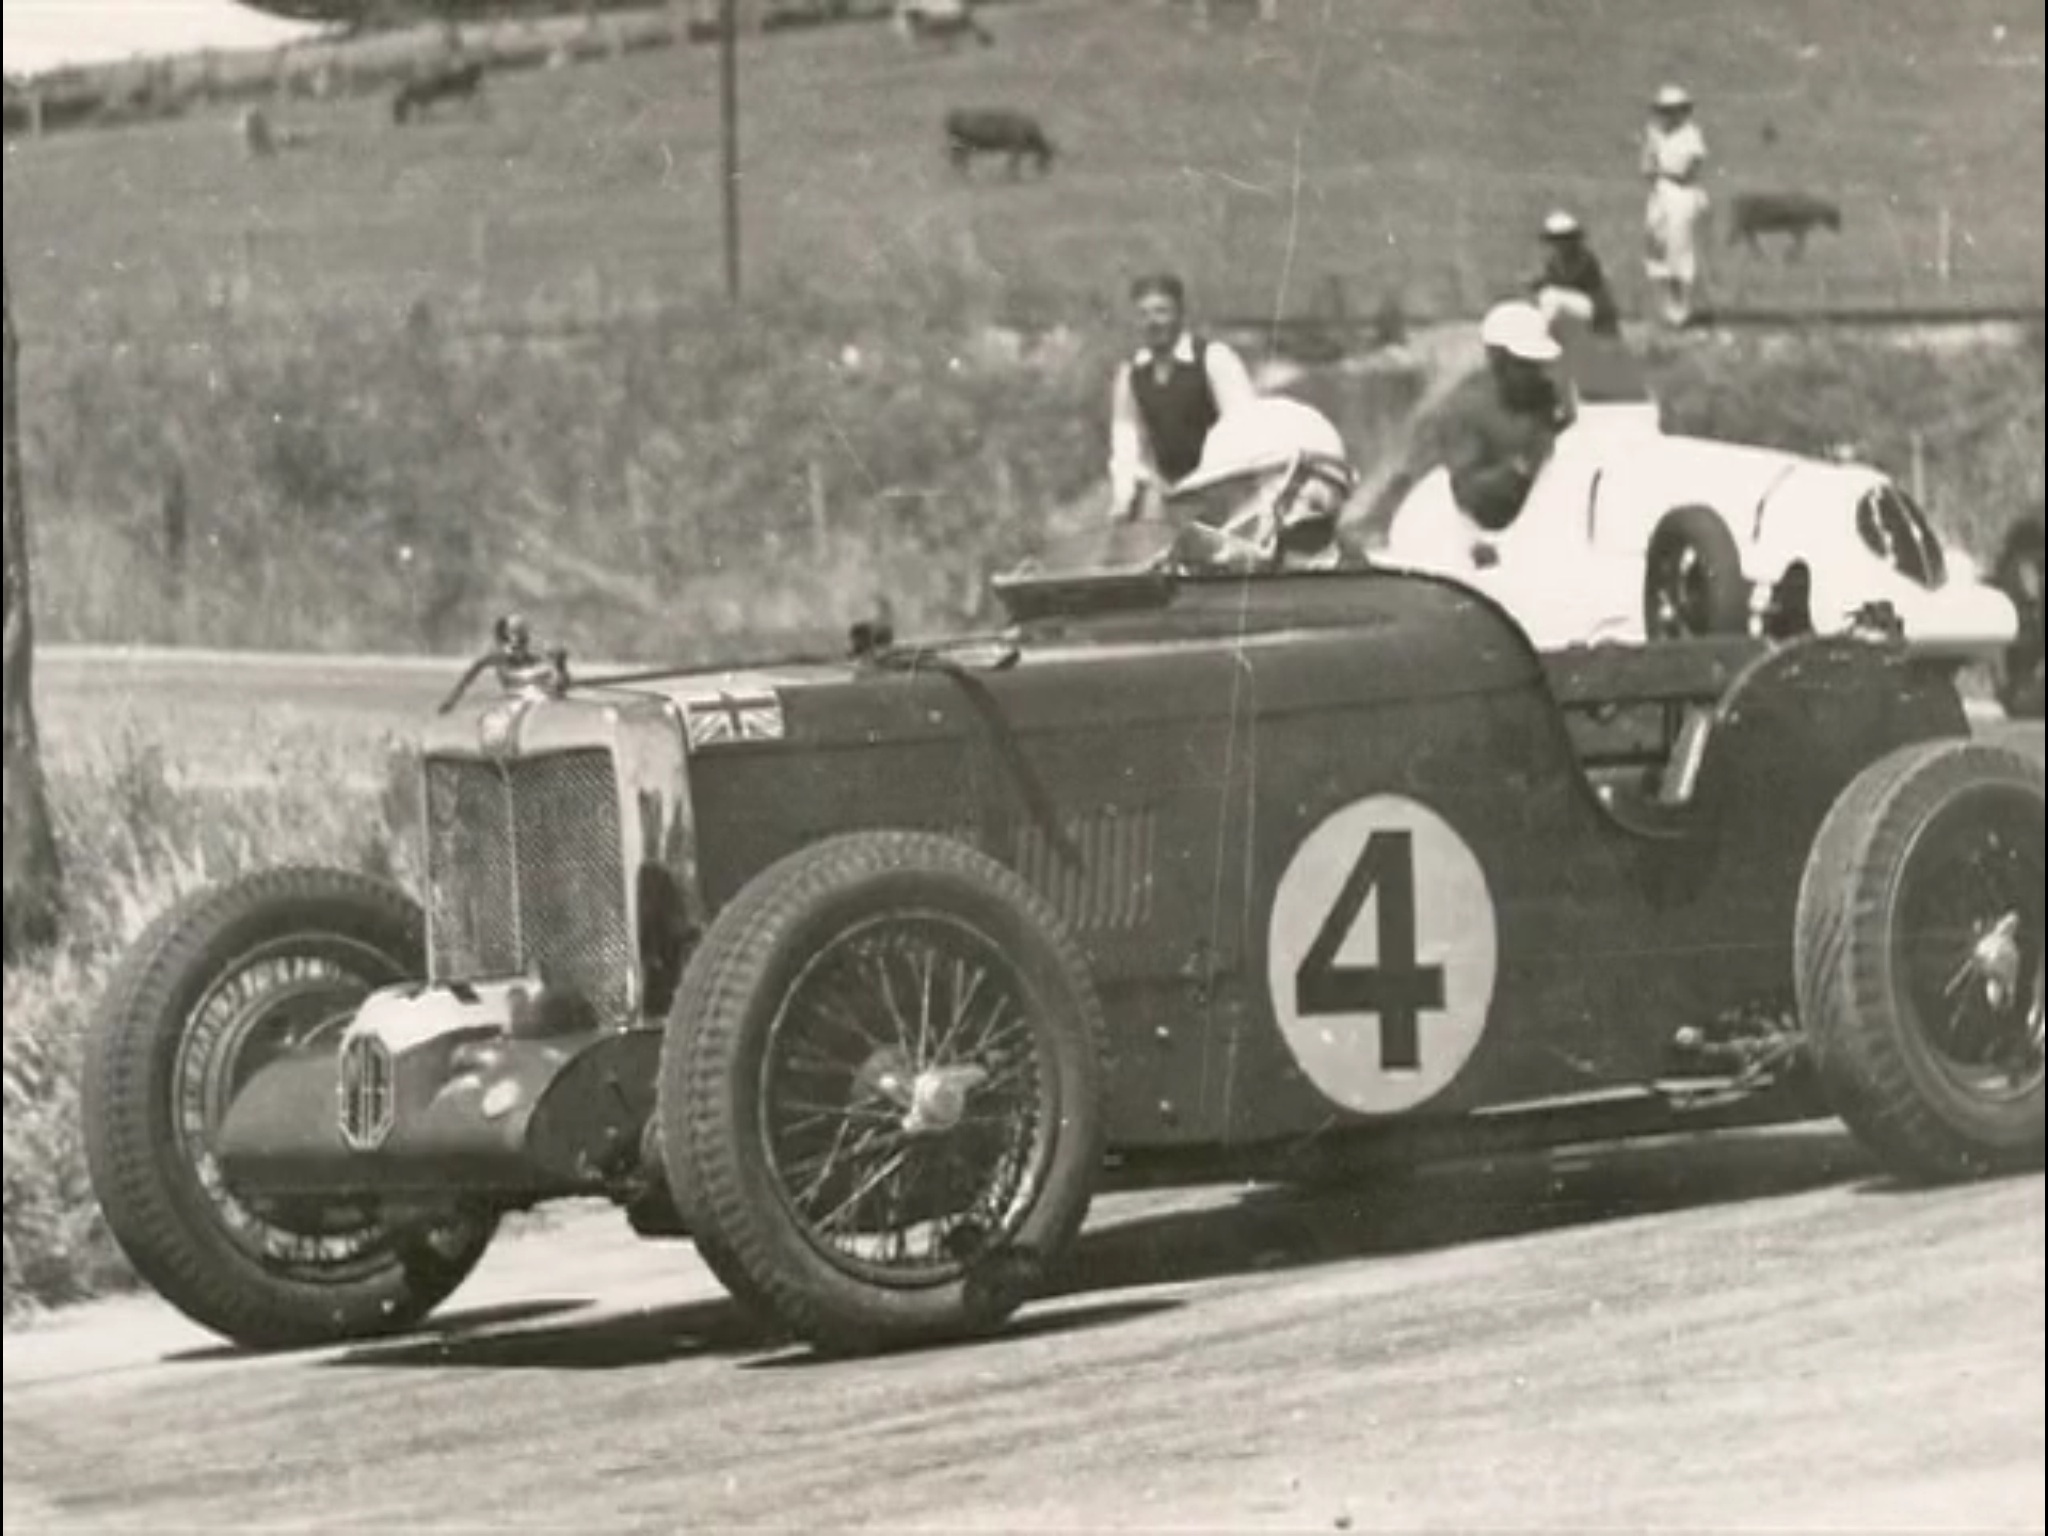 mg k3 magnette primotipolyster jackson, mg k3 ahead of sinclair\u0027s alta (n howard)